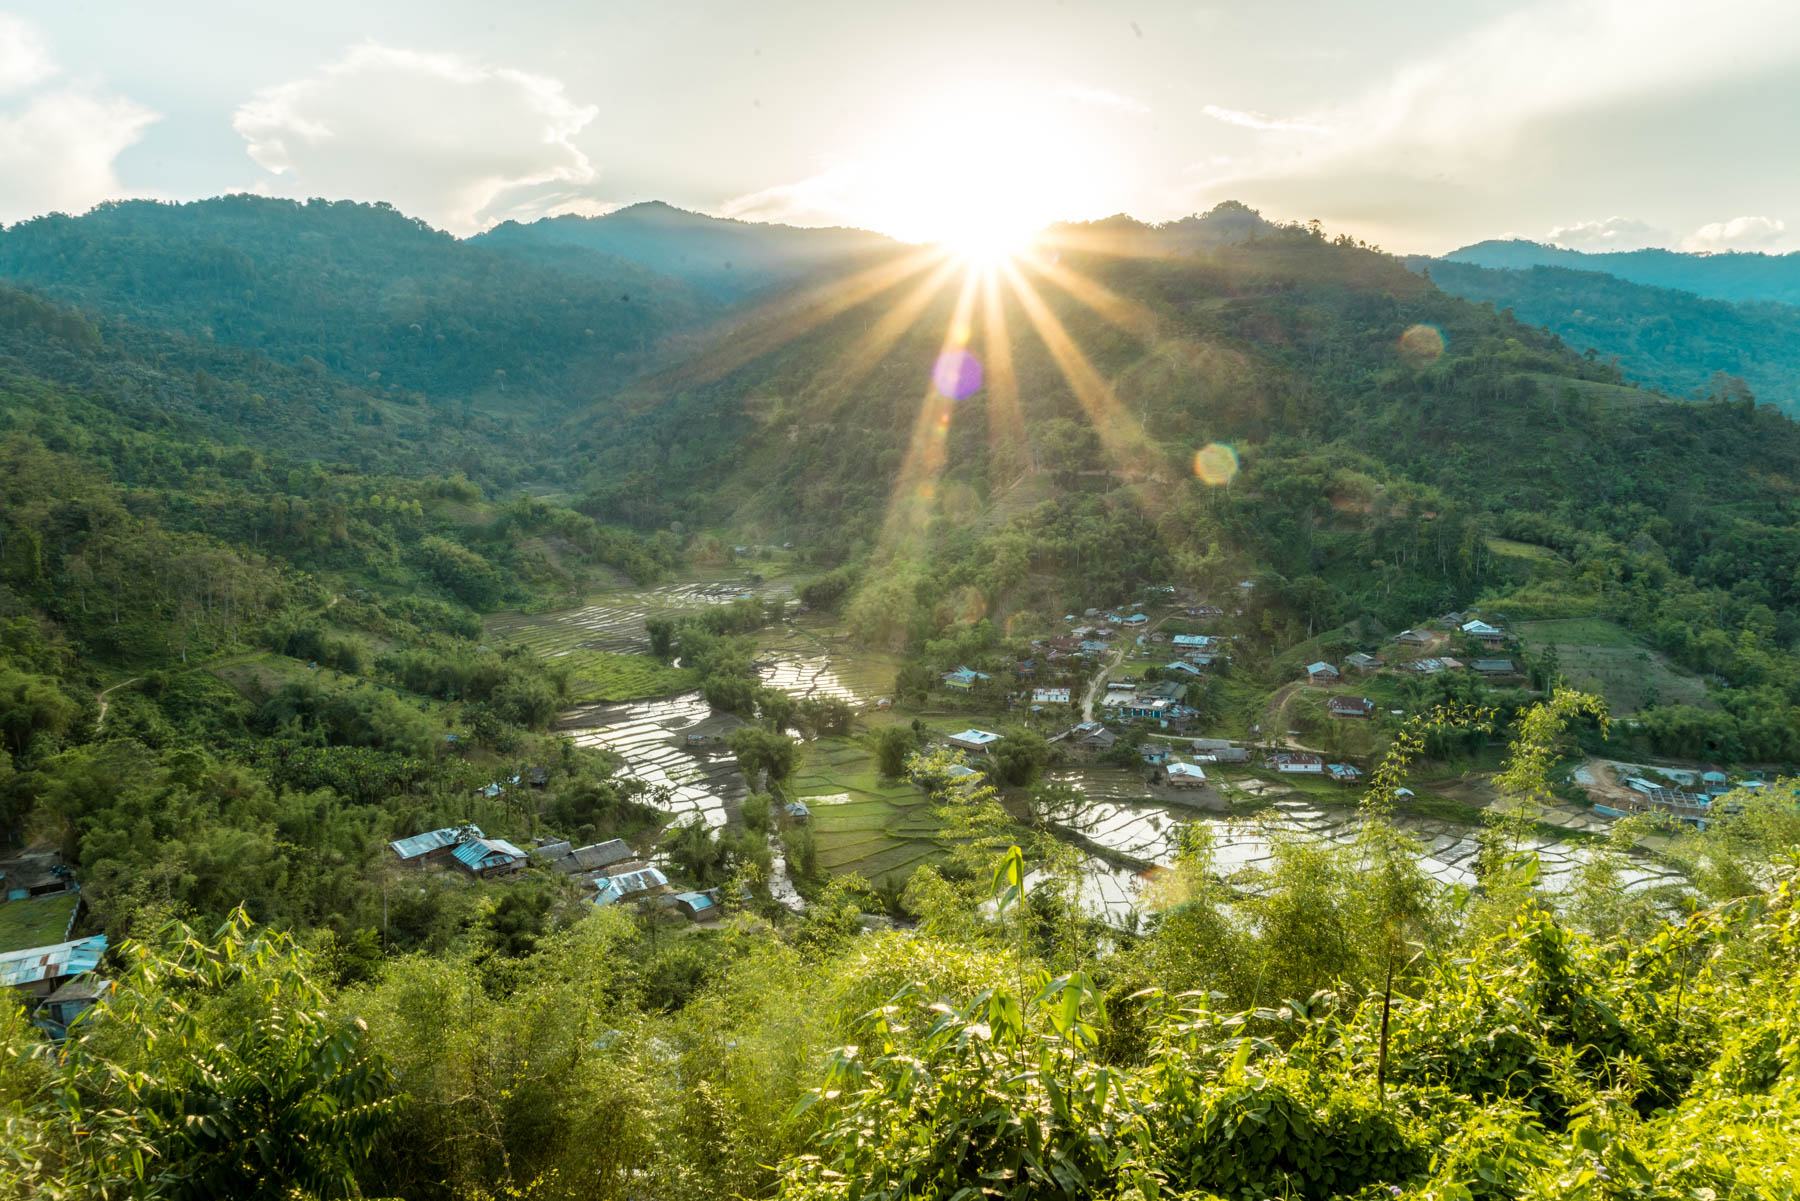 Backpacking Arunachal Pradesh travel guide - Sunset over Daporijo - Lost With Purpose